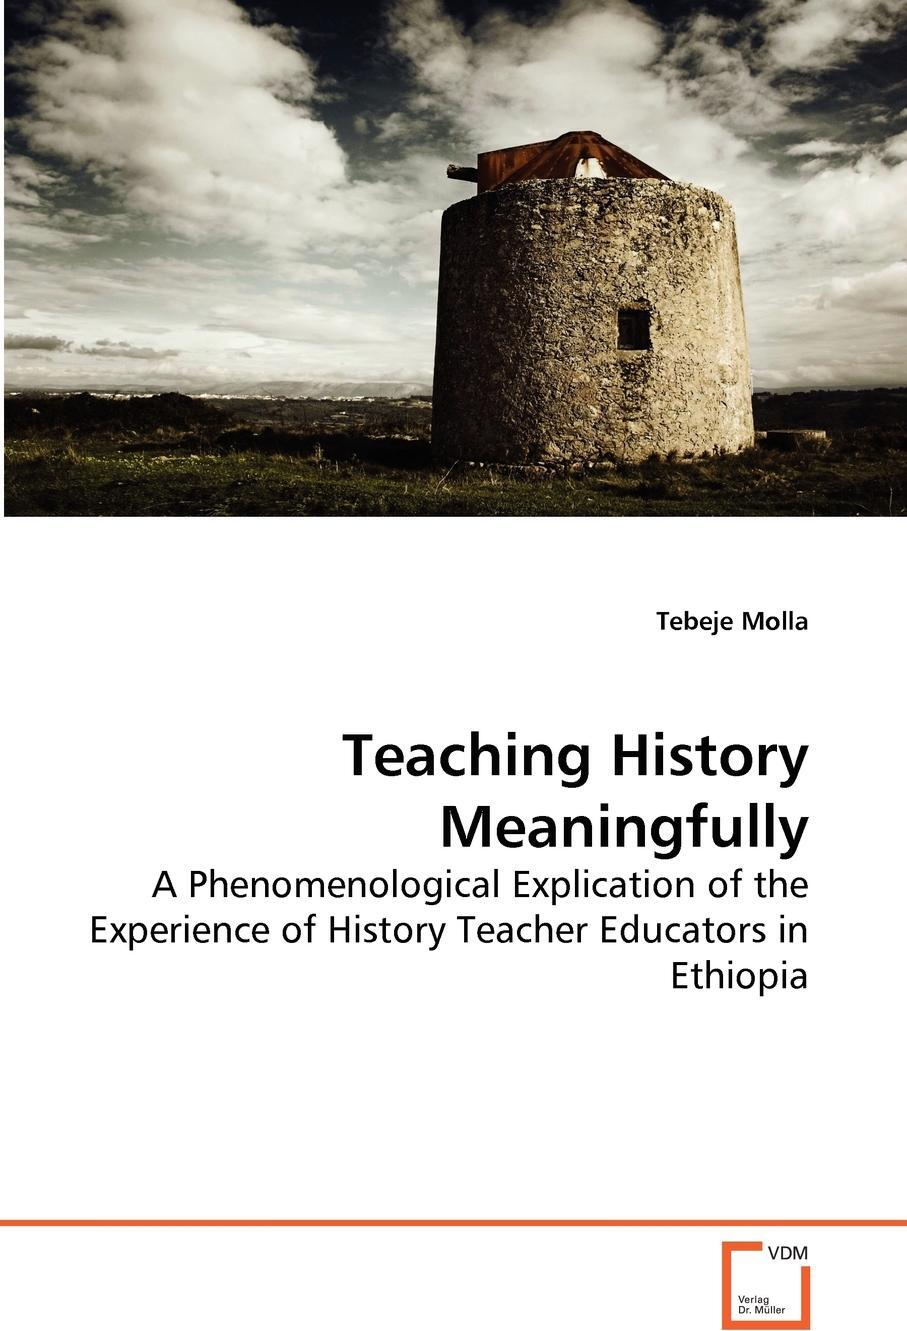 Teaching History Meaningfully